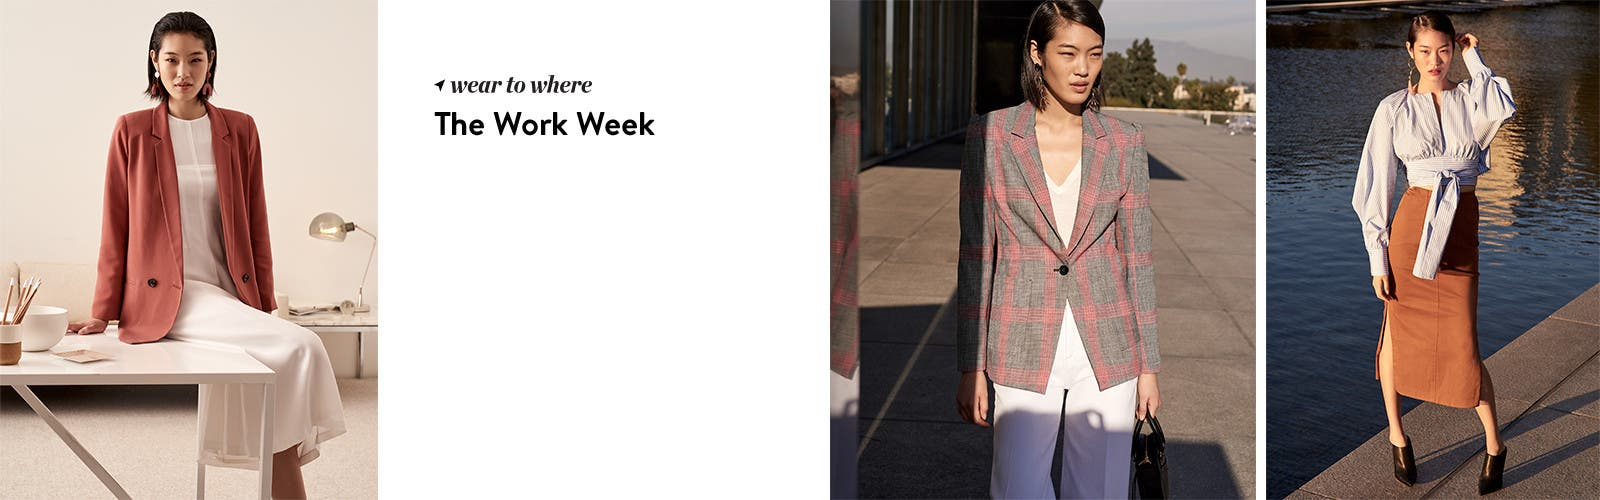 Women's style for the work week.